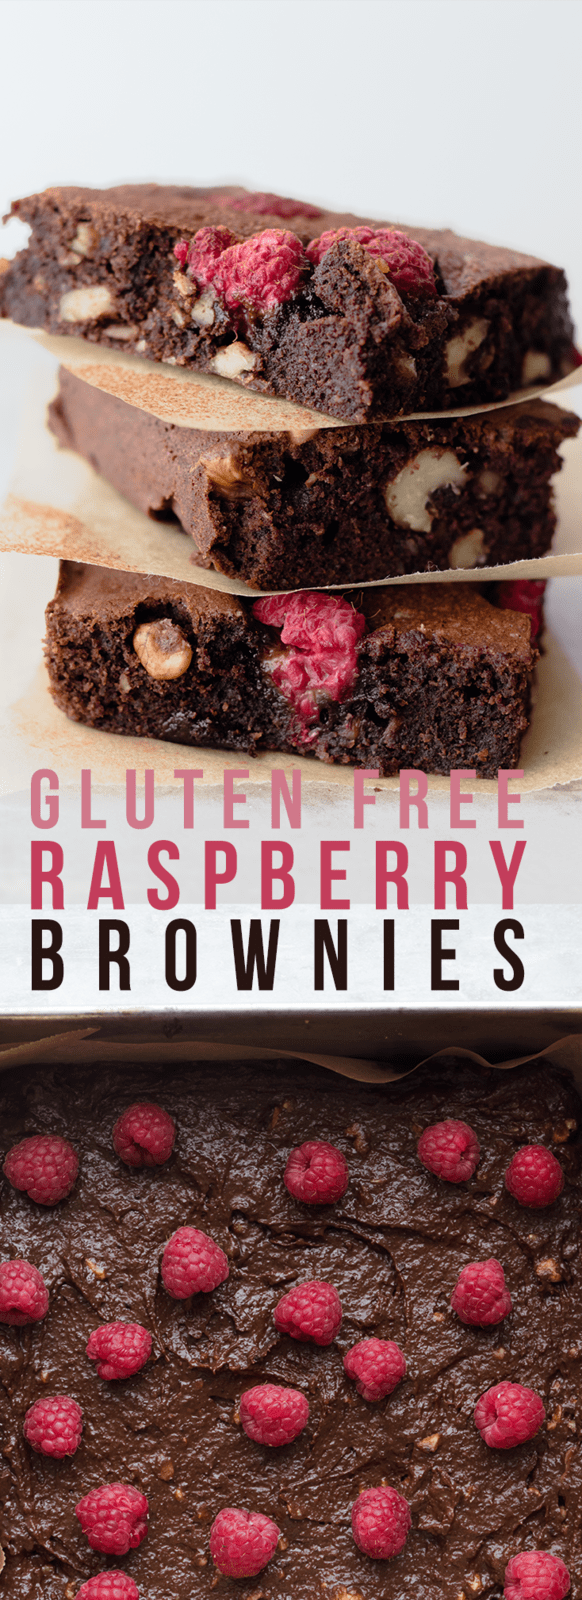 Rich and fudgey one bowl gluten free brownies loaded with fresh raspberries. Crispy outer edges and a soft, chewy and kinda gooey middle.